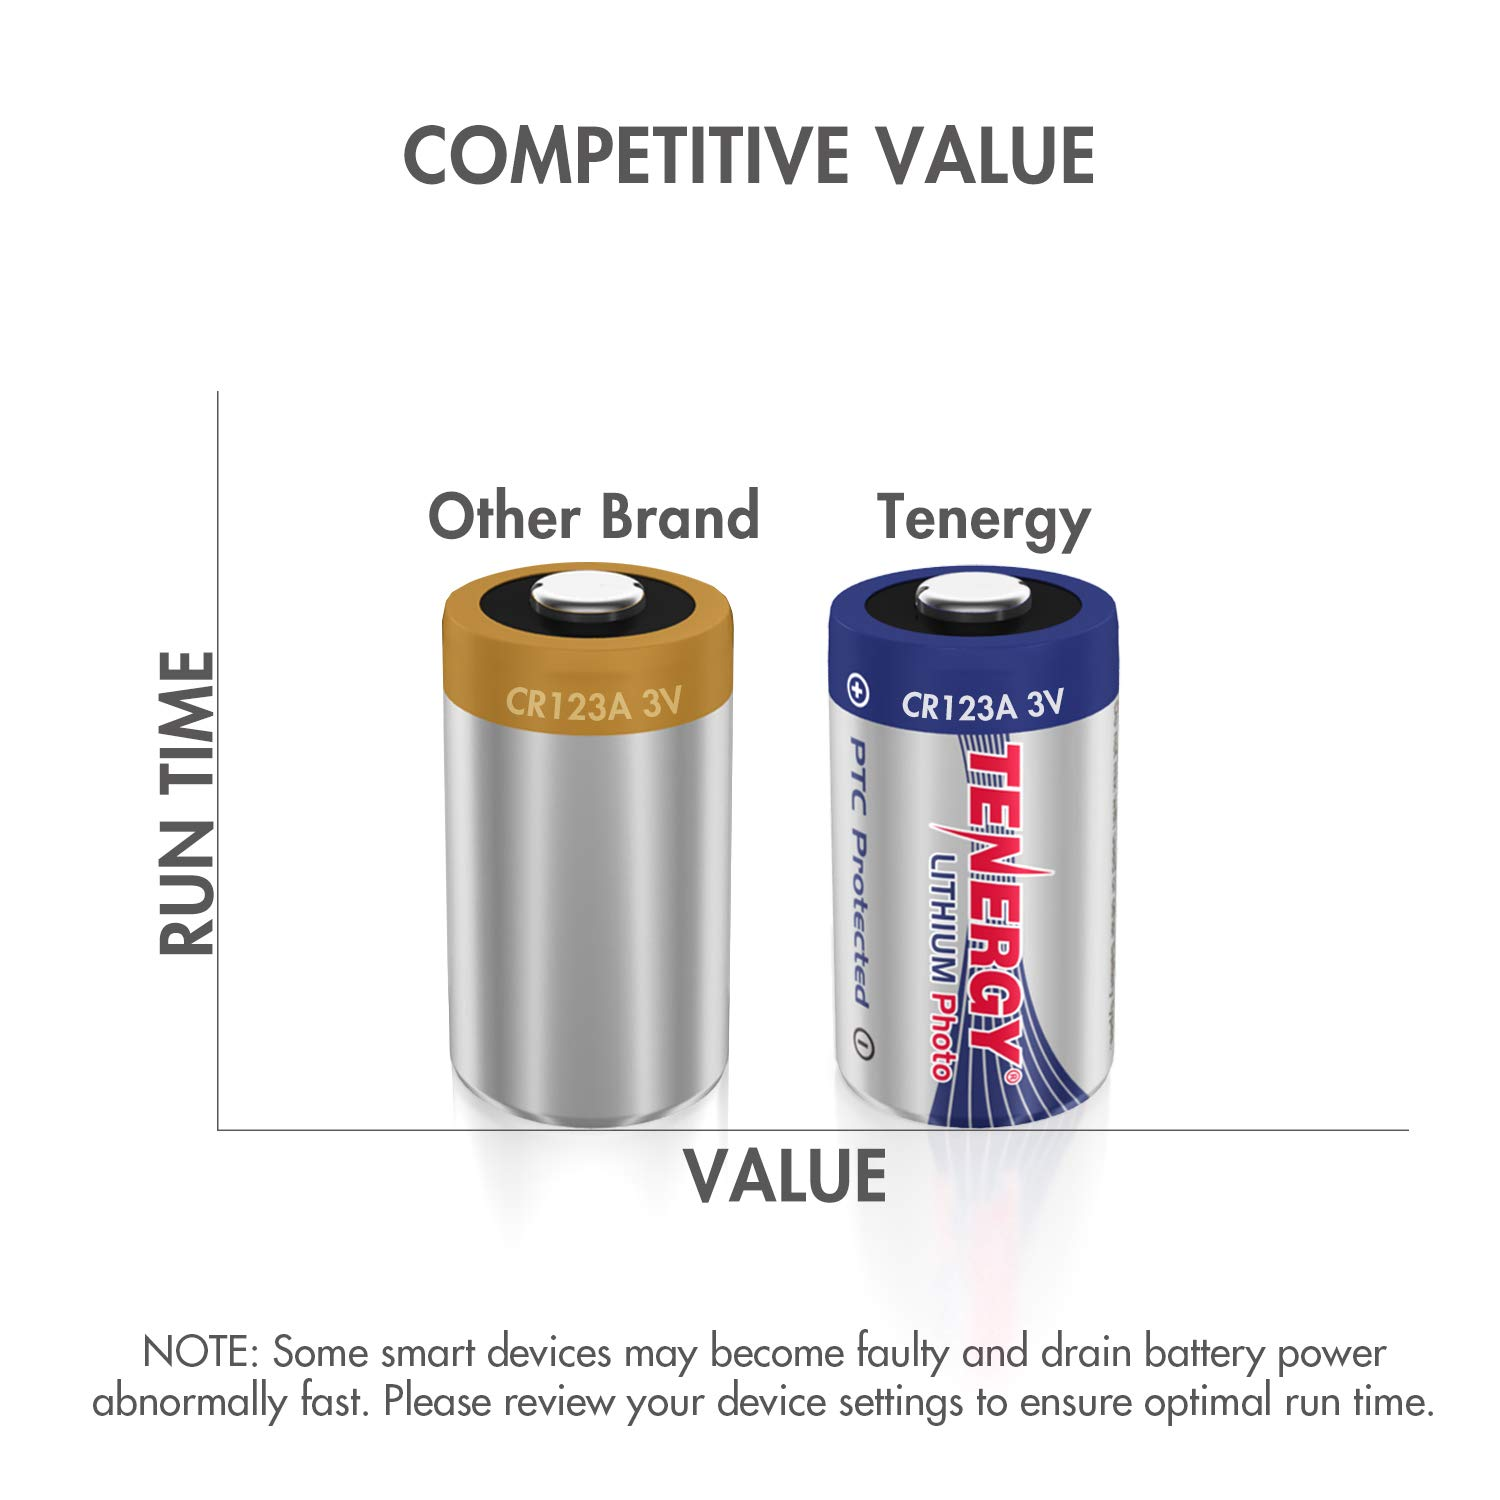 Tenergy Propel 1500mAh 3V CR123A Lithium Battery, High Performance CR123A Cell Batteries PTC Protected for Cameras, Flashlight Replacement CR123A Batteries, 40-Pack by Tenergy (Image #6)